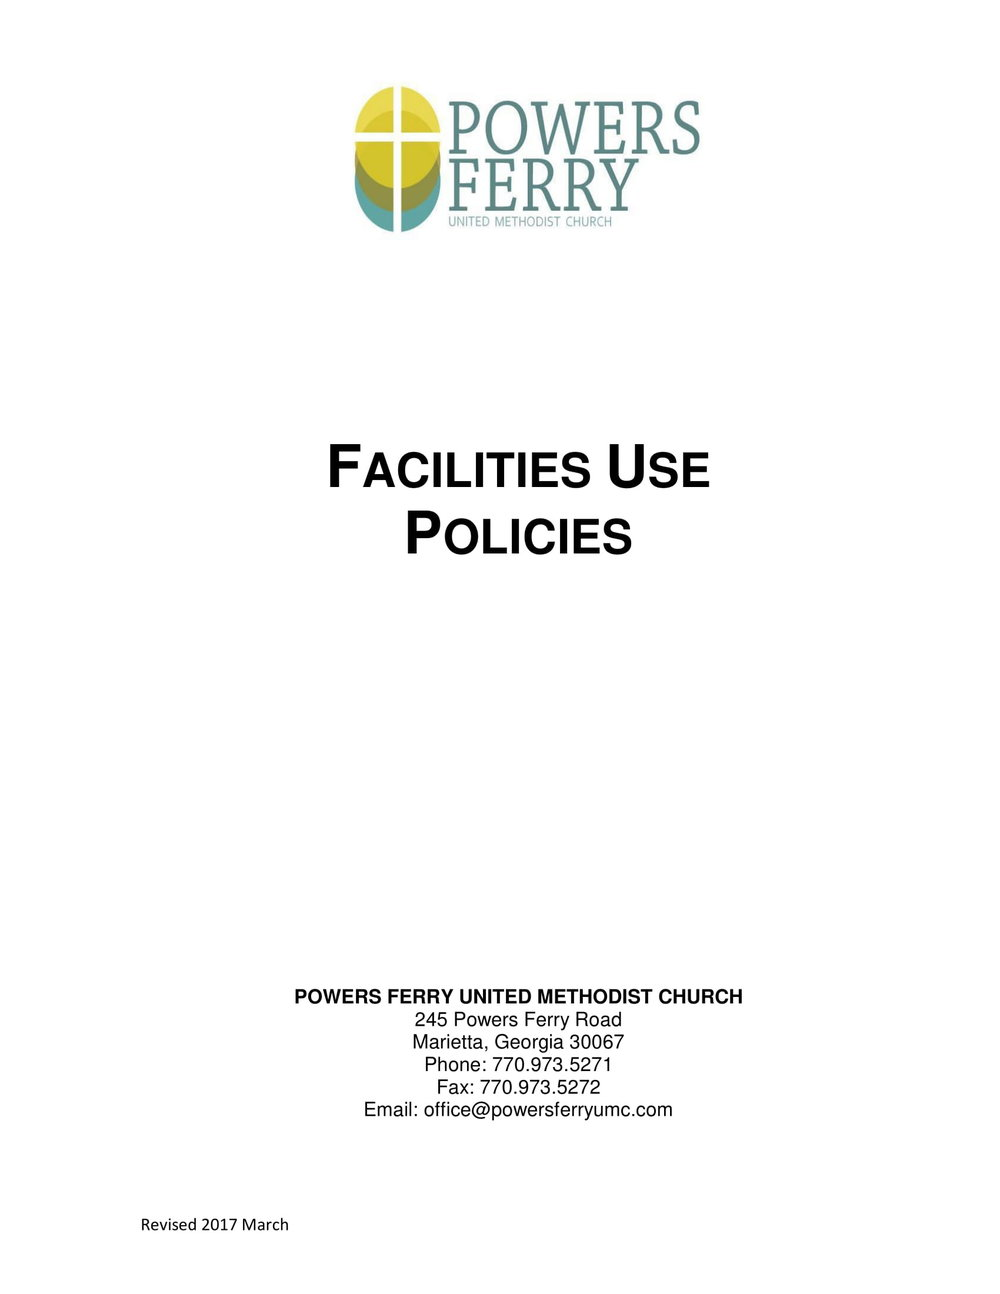 Facilities Policy 2017-01.jpg